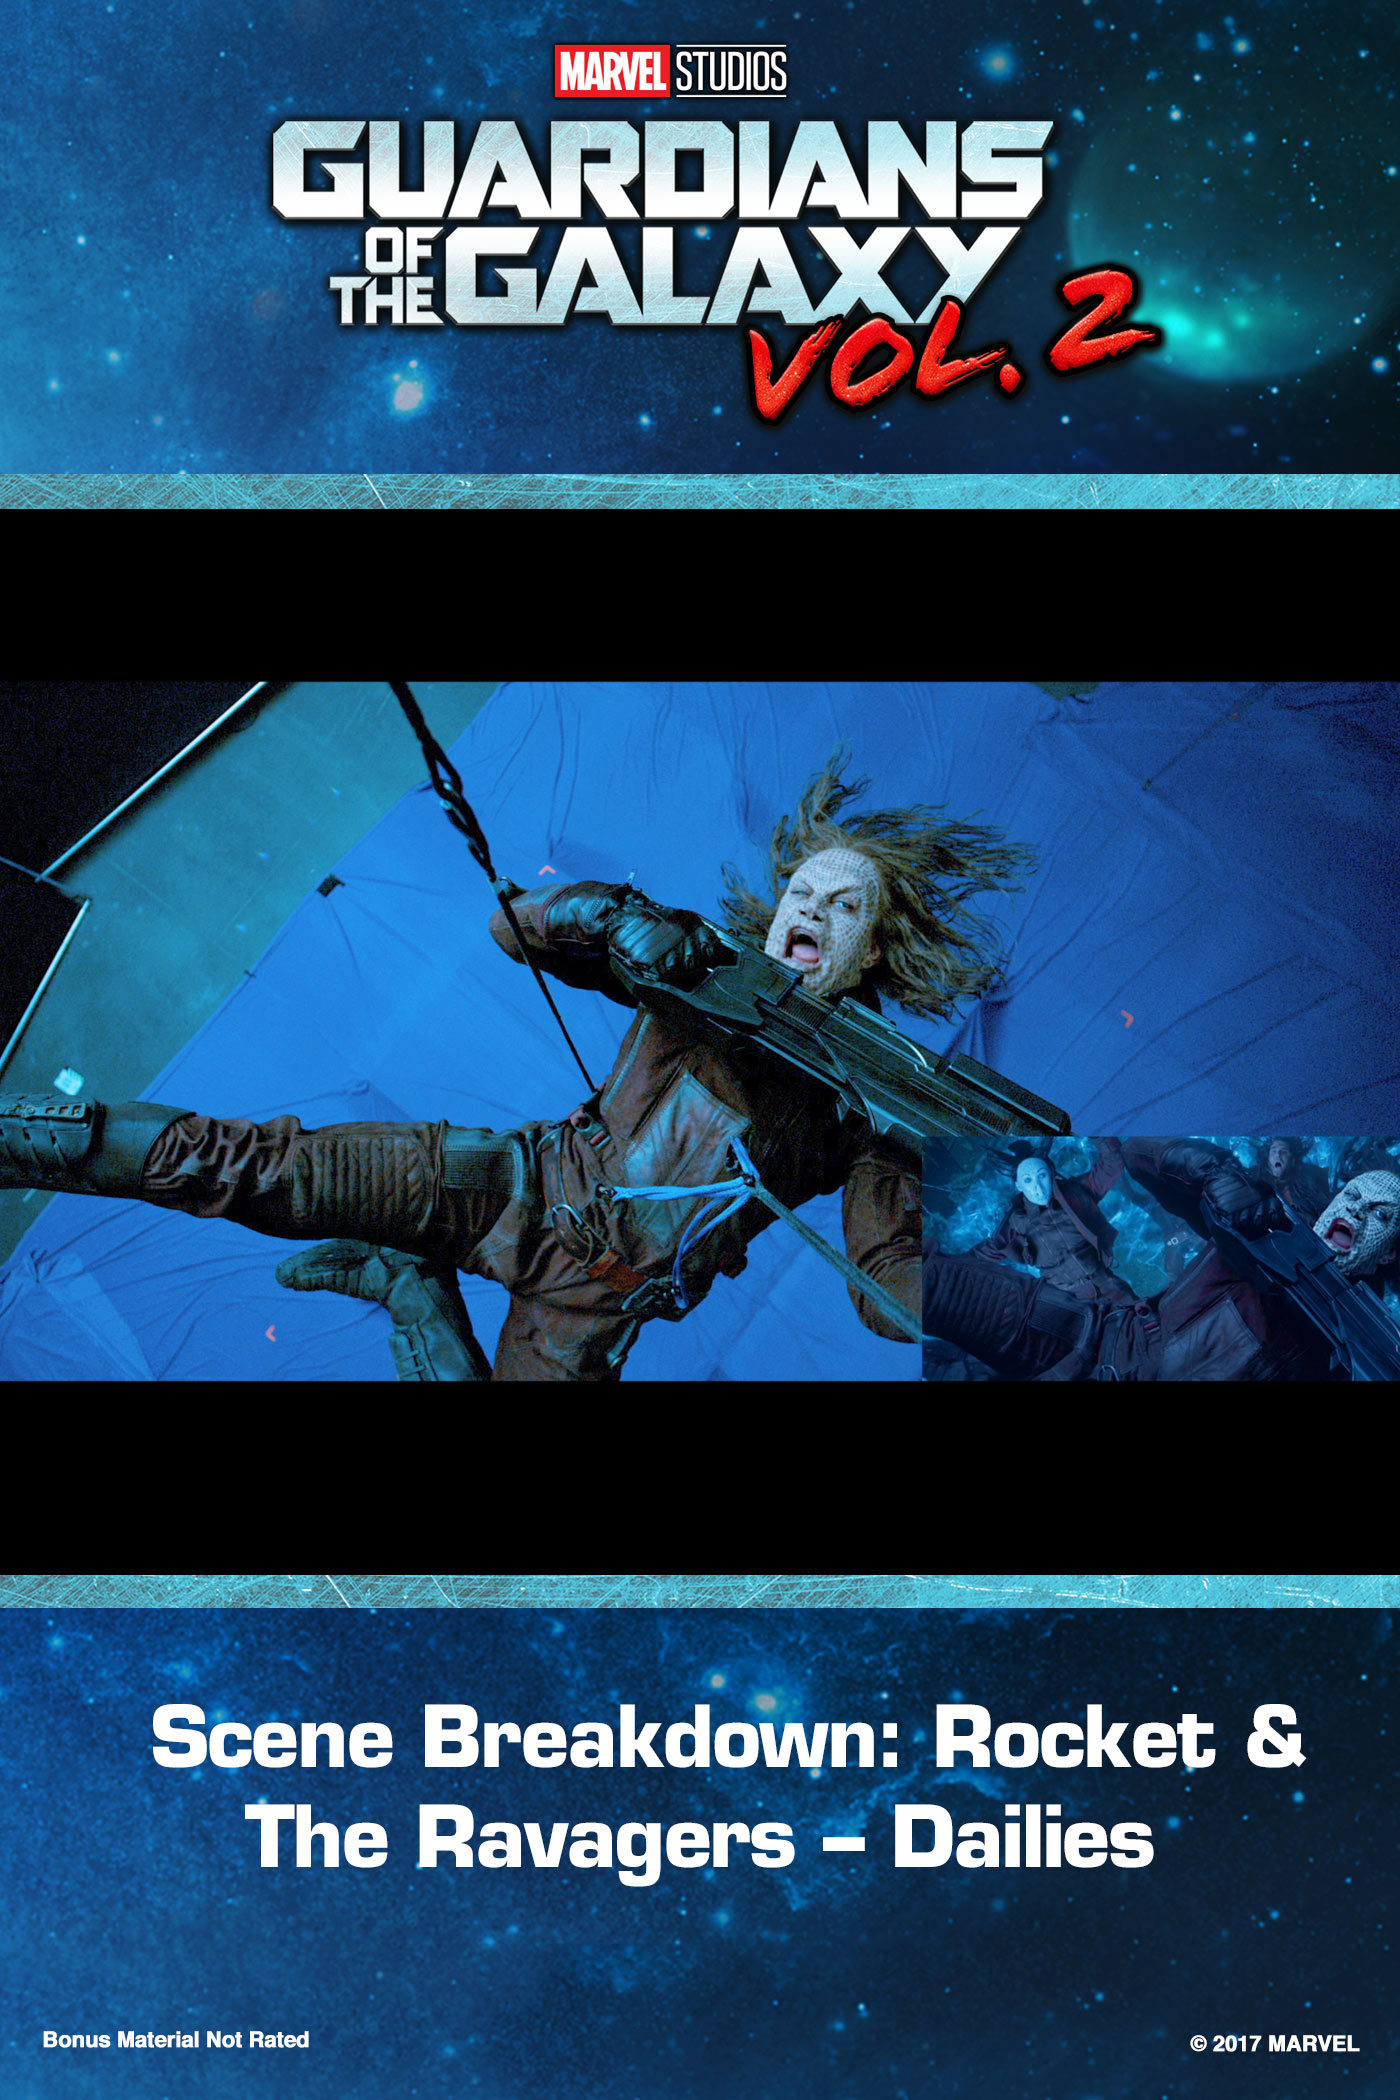 Scene Breakdown: Rocket & The Ravagers – Dailies